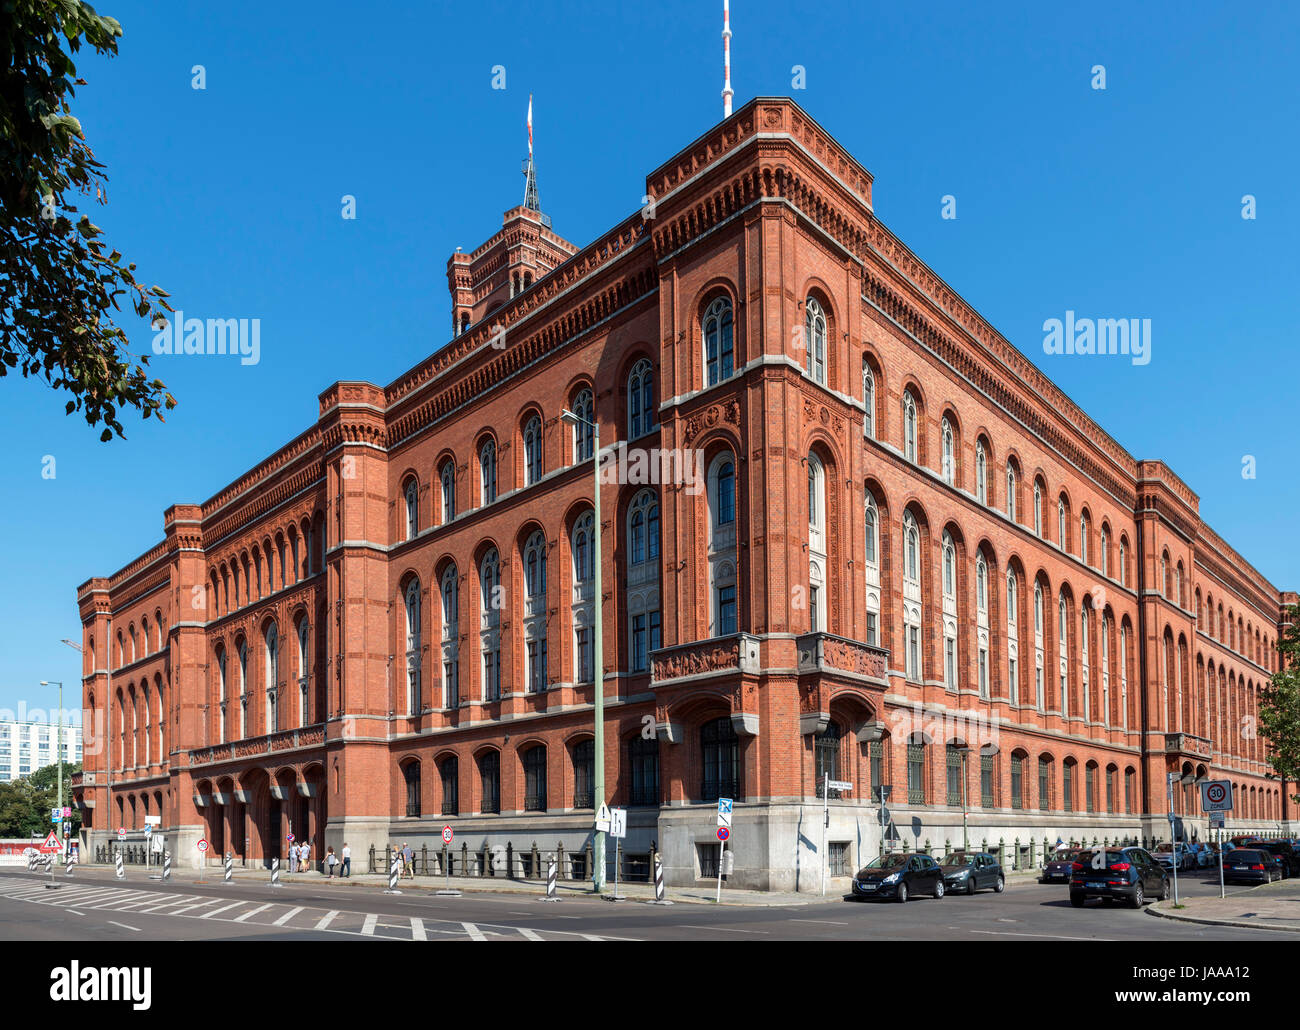 The Rotes Rathaus (Red City Hall), the seat of  the mayor and city government, Rathausstrasse, Berlin, Germany - Stock Image